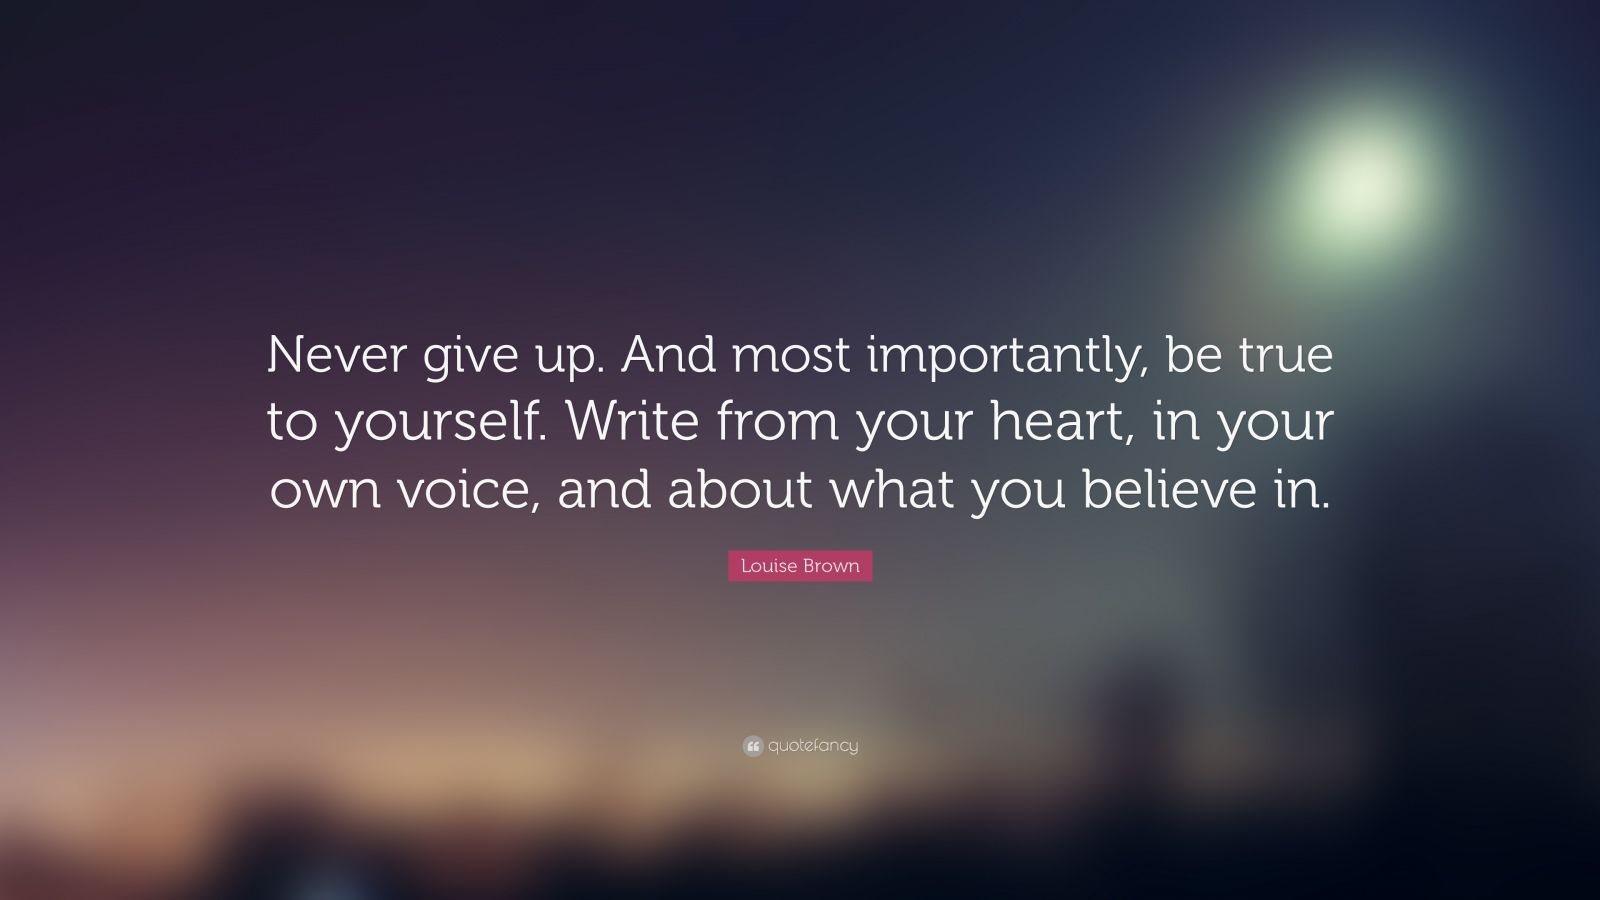 """Louise Brown Quote: """"Never give up. And most importantly, be true to yourself. Write from your heart, in your own voice, and about what you believe in."""""""